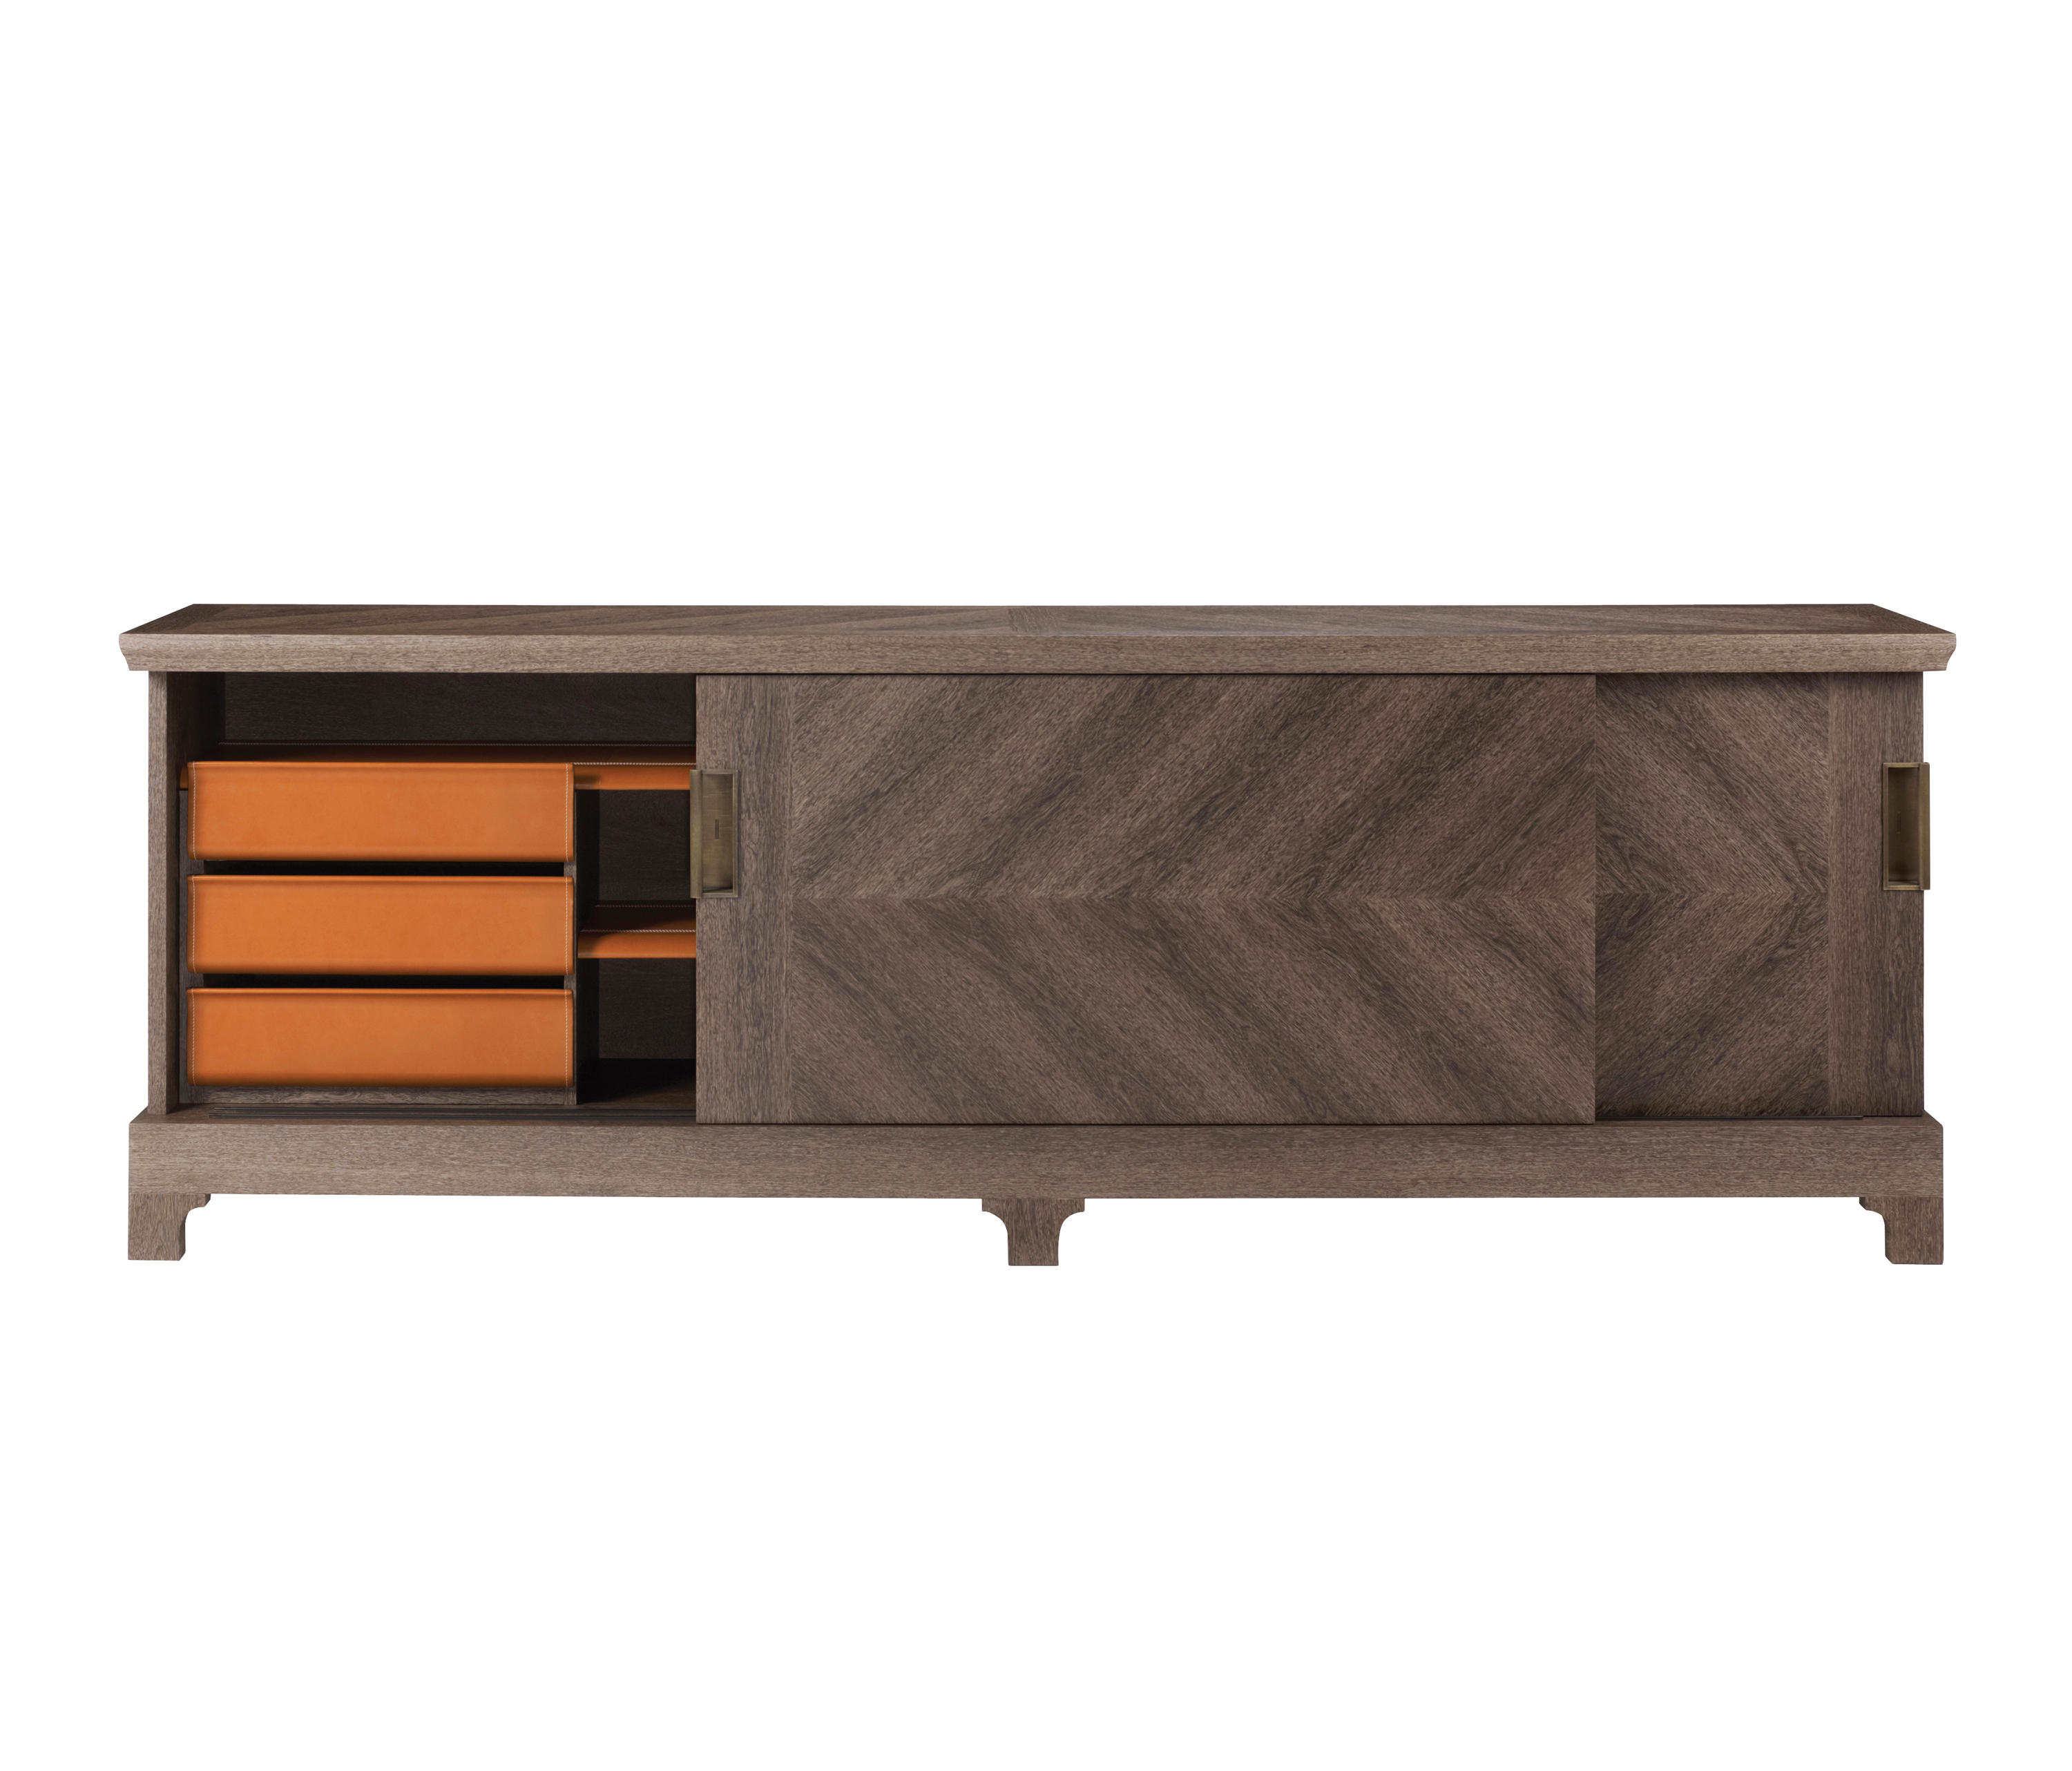 ... Oolong Low Cabinet By Promemoria | Sideboards ...